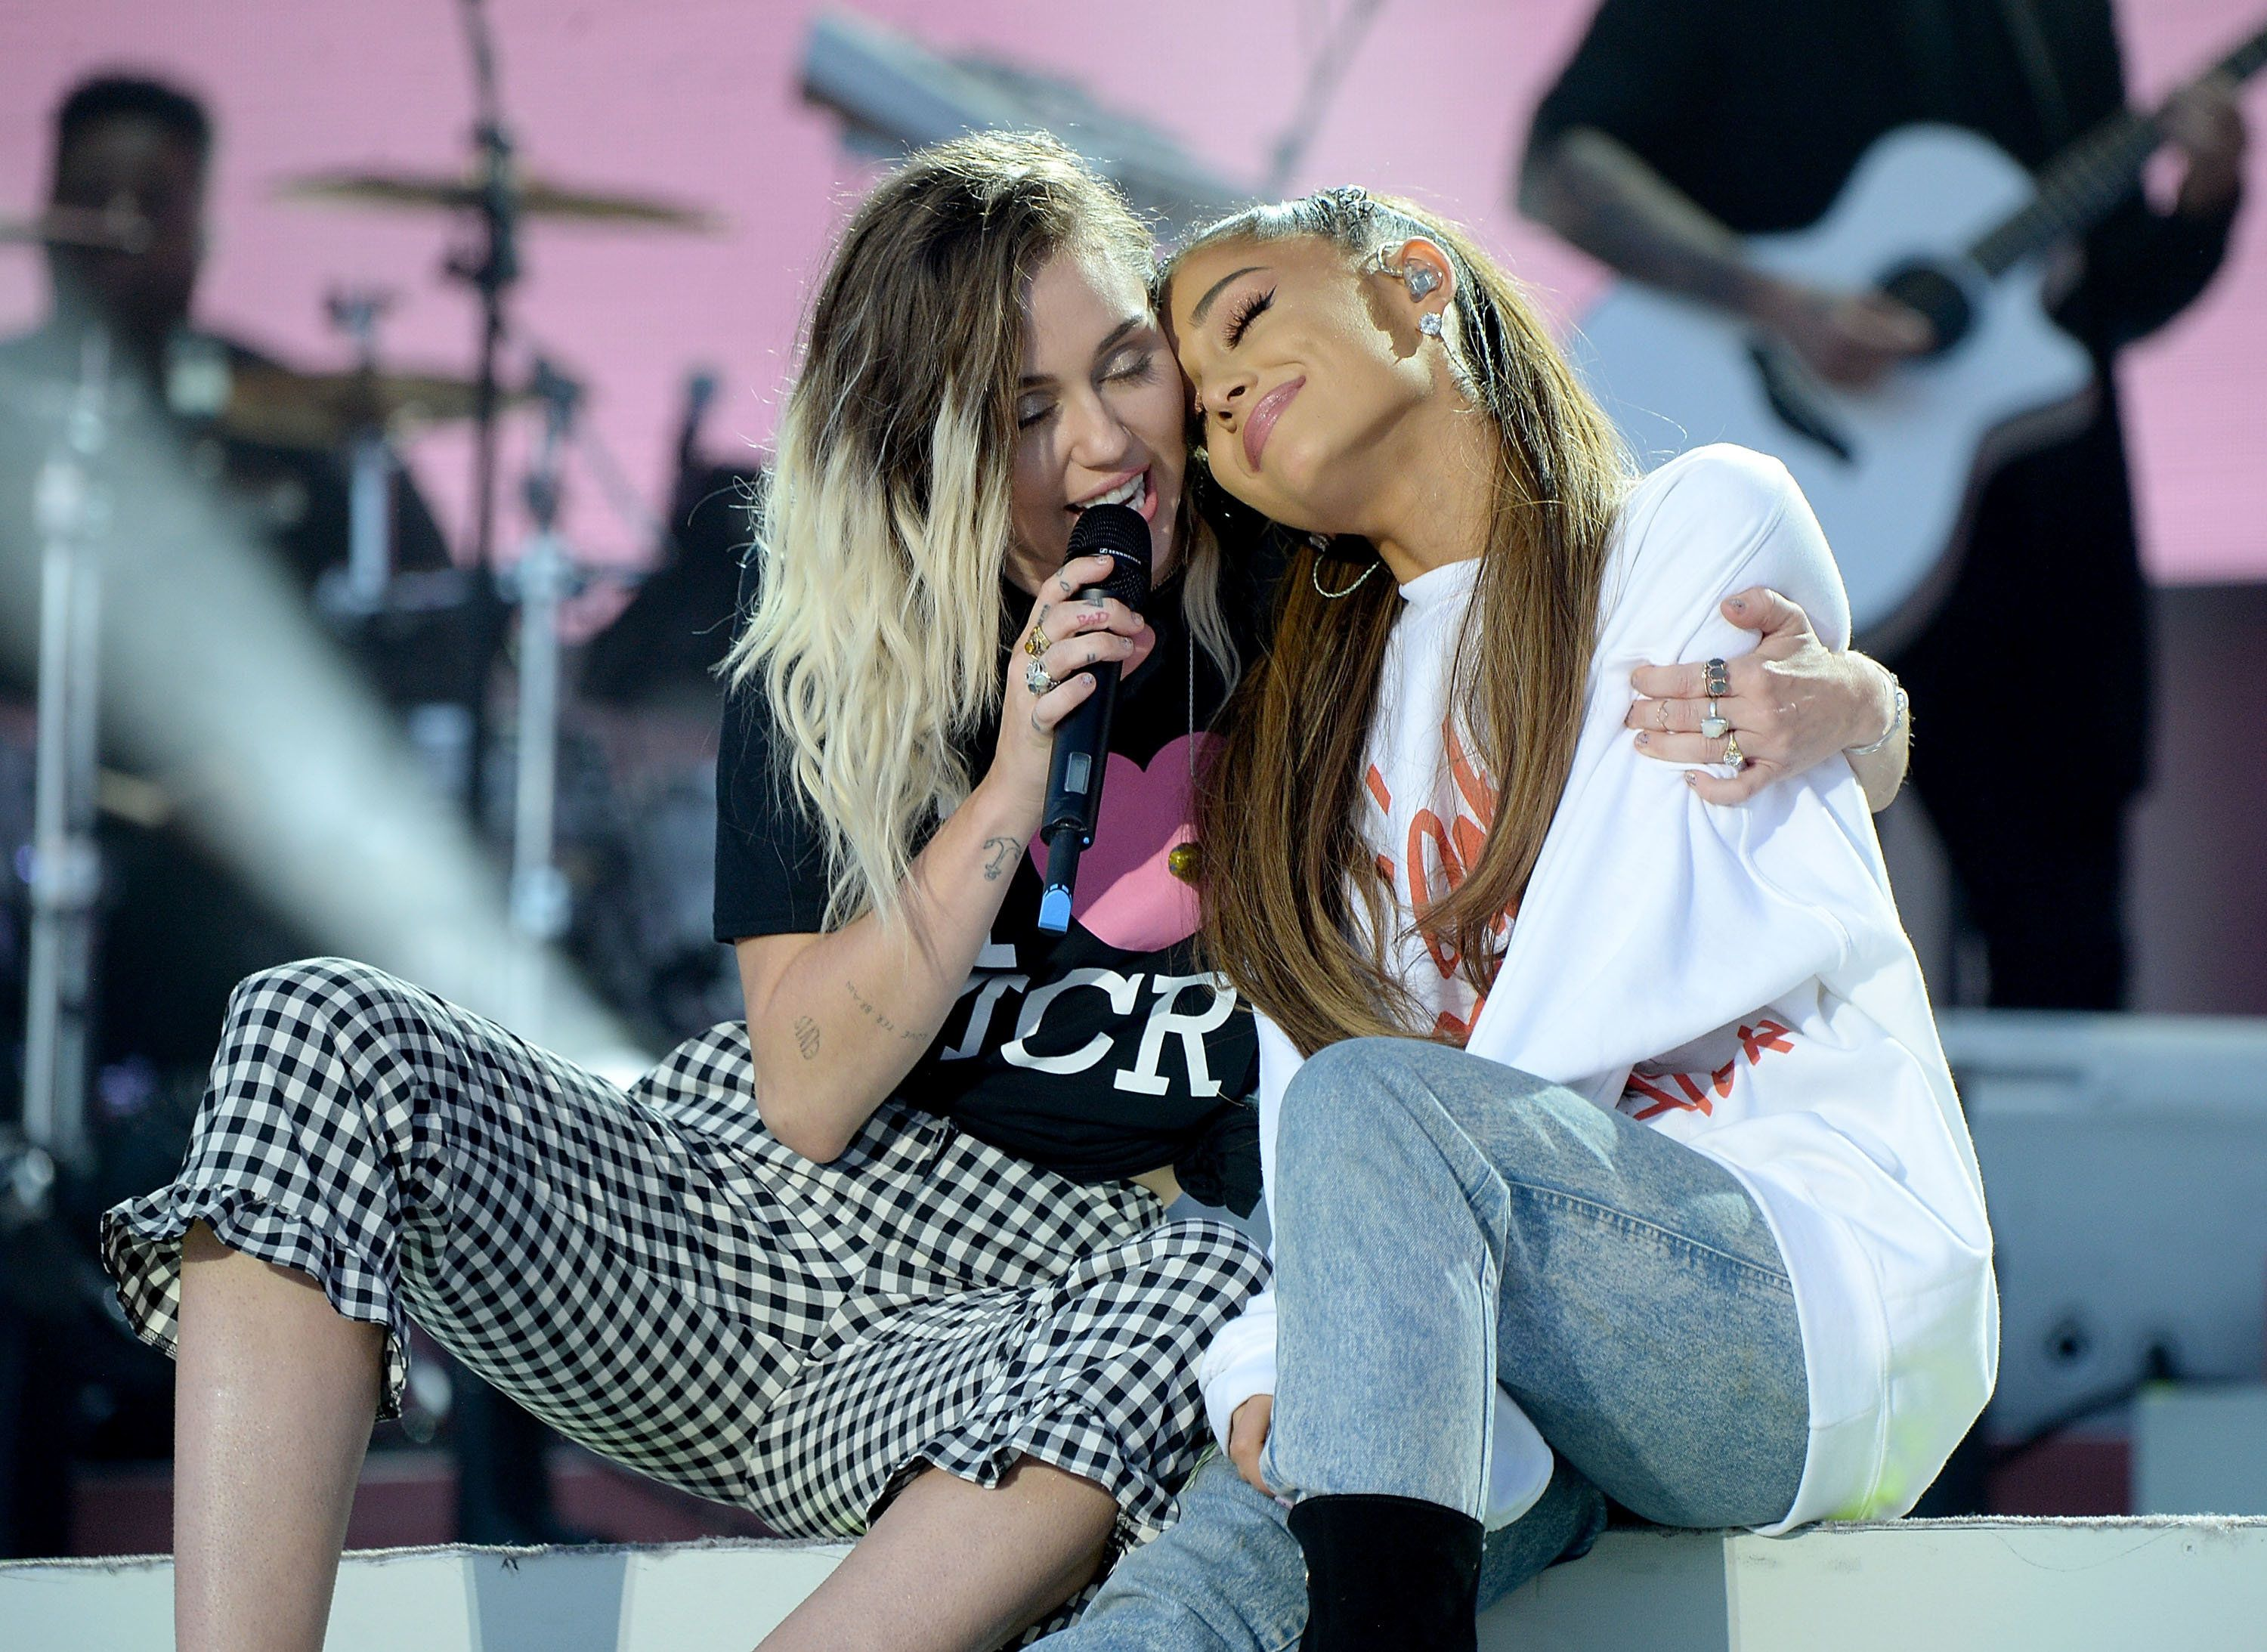 Ariana Grande on stage with her friend Miley Cyrus at One Love